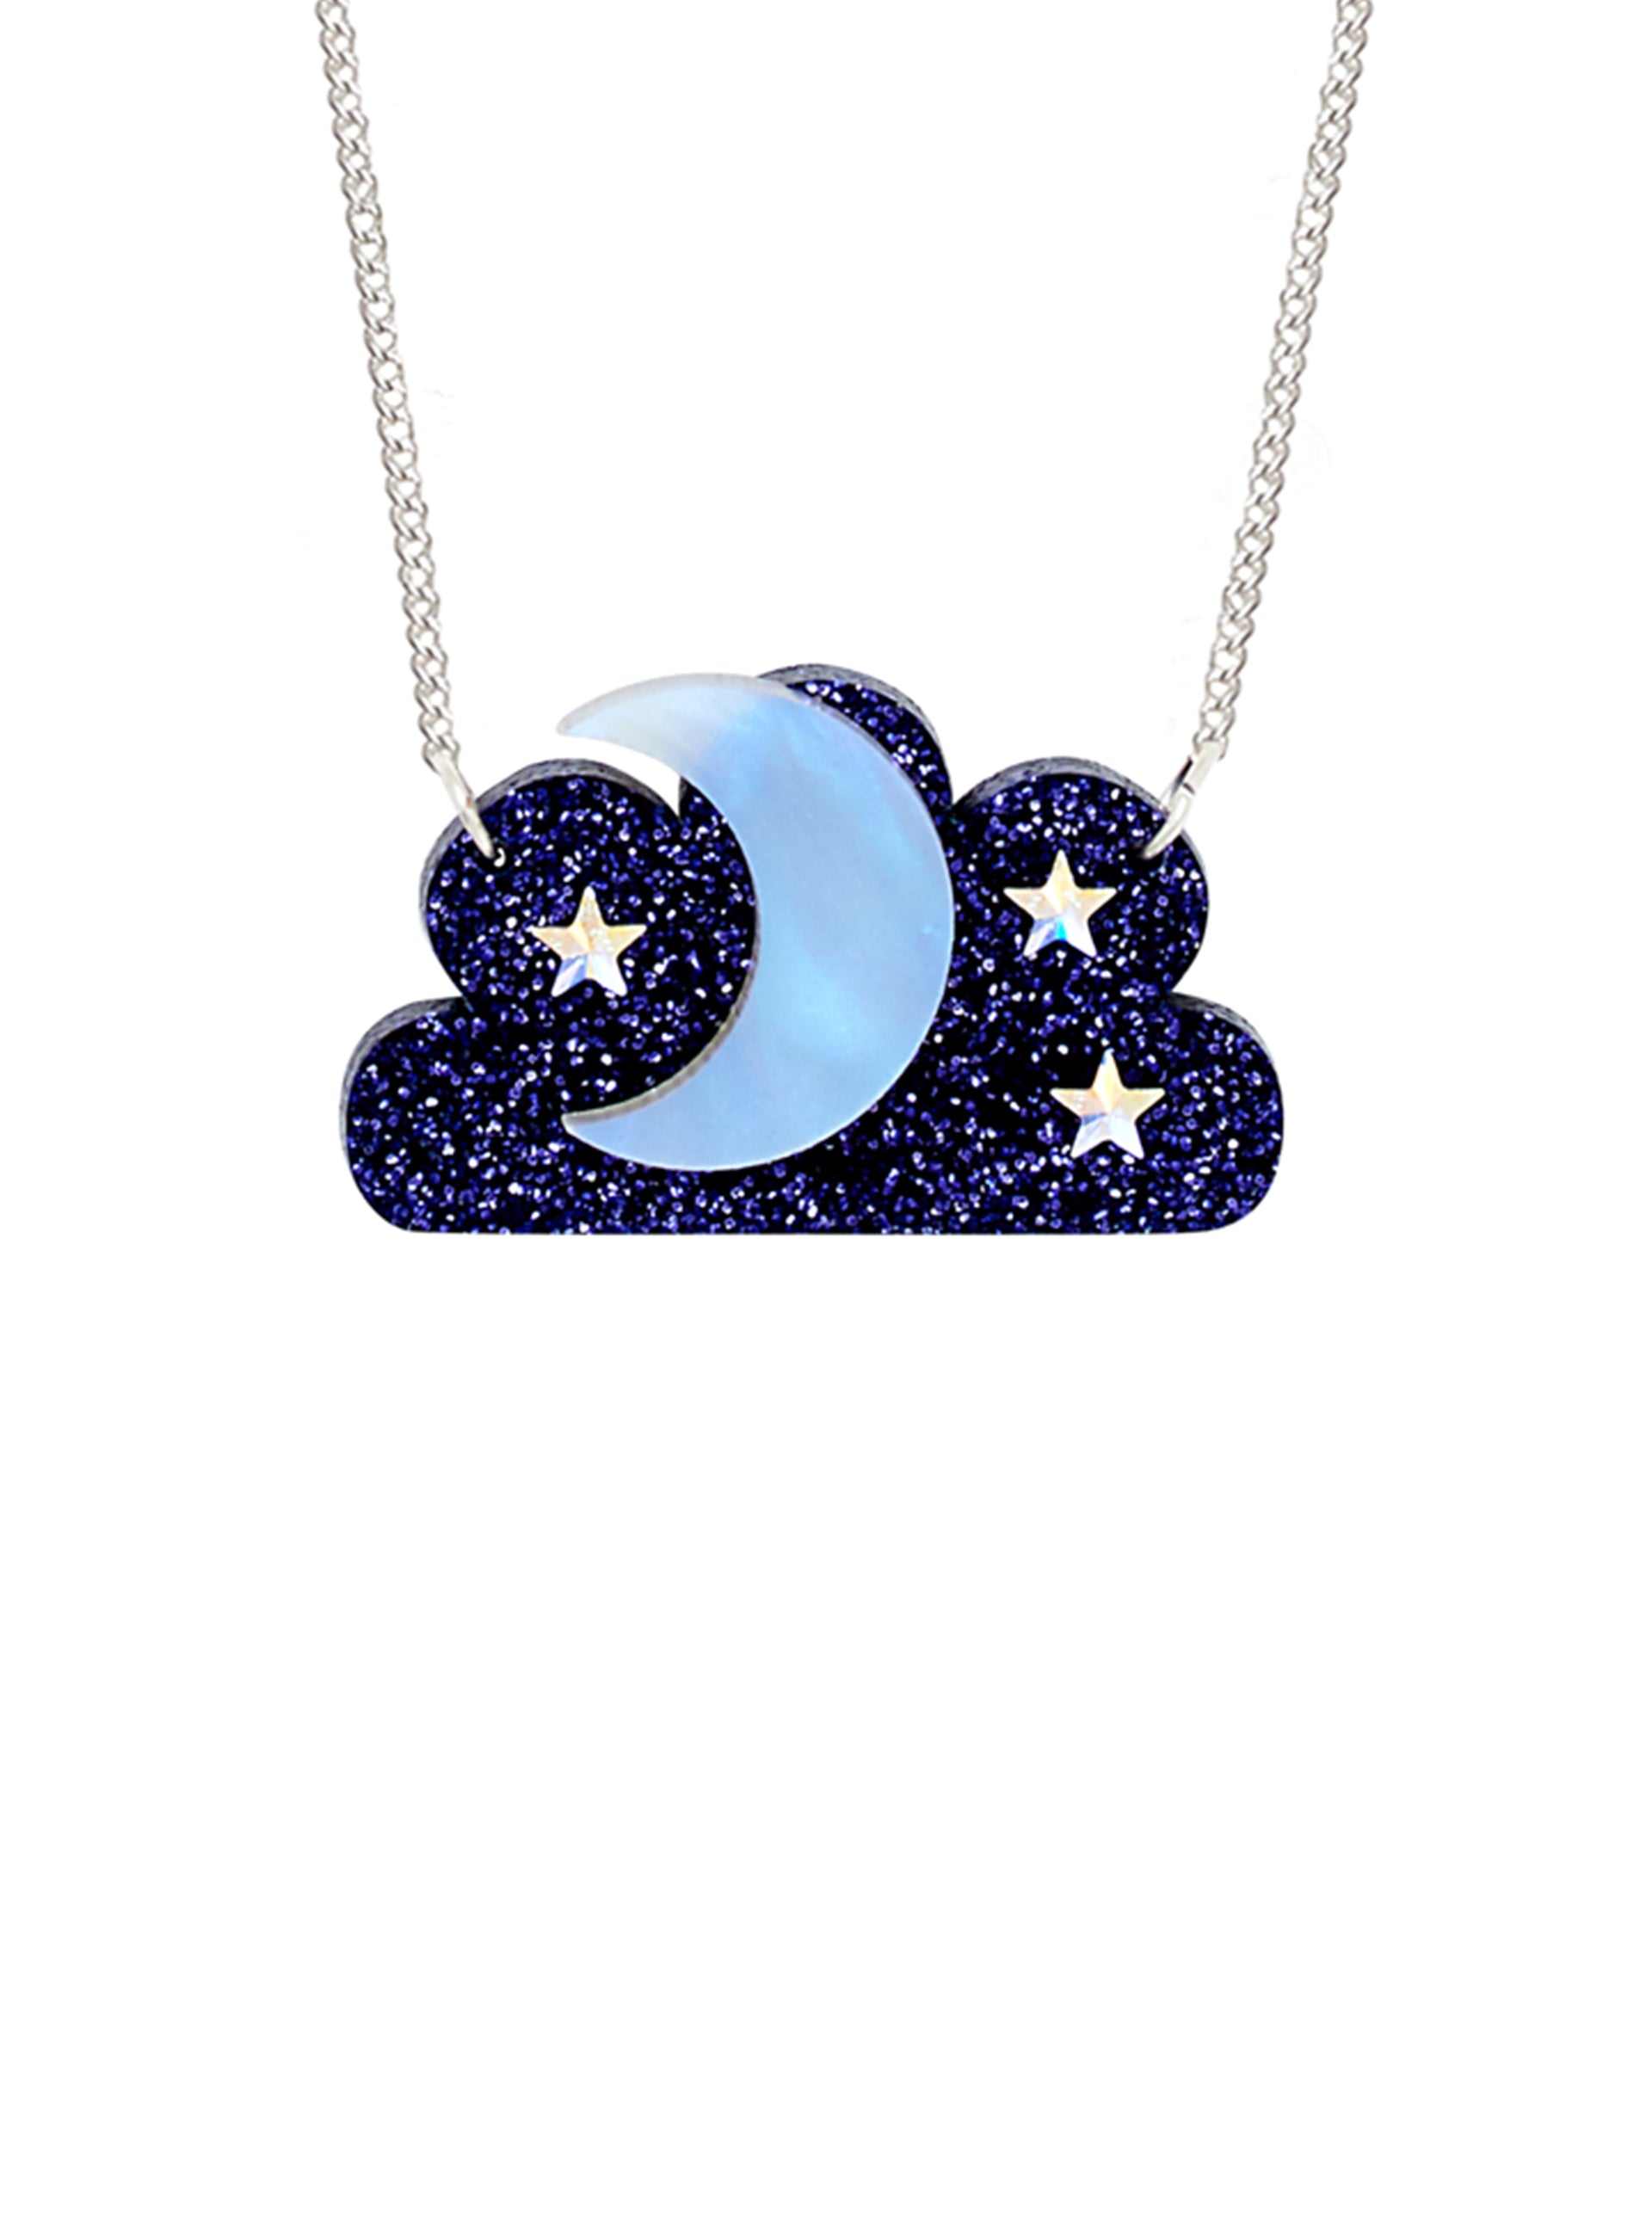 Cosmic Cloud Necklace